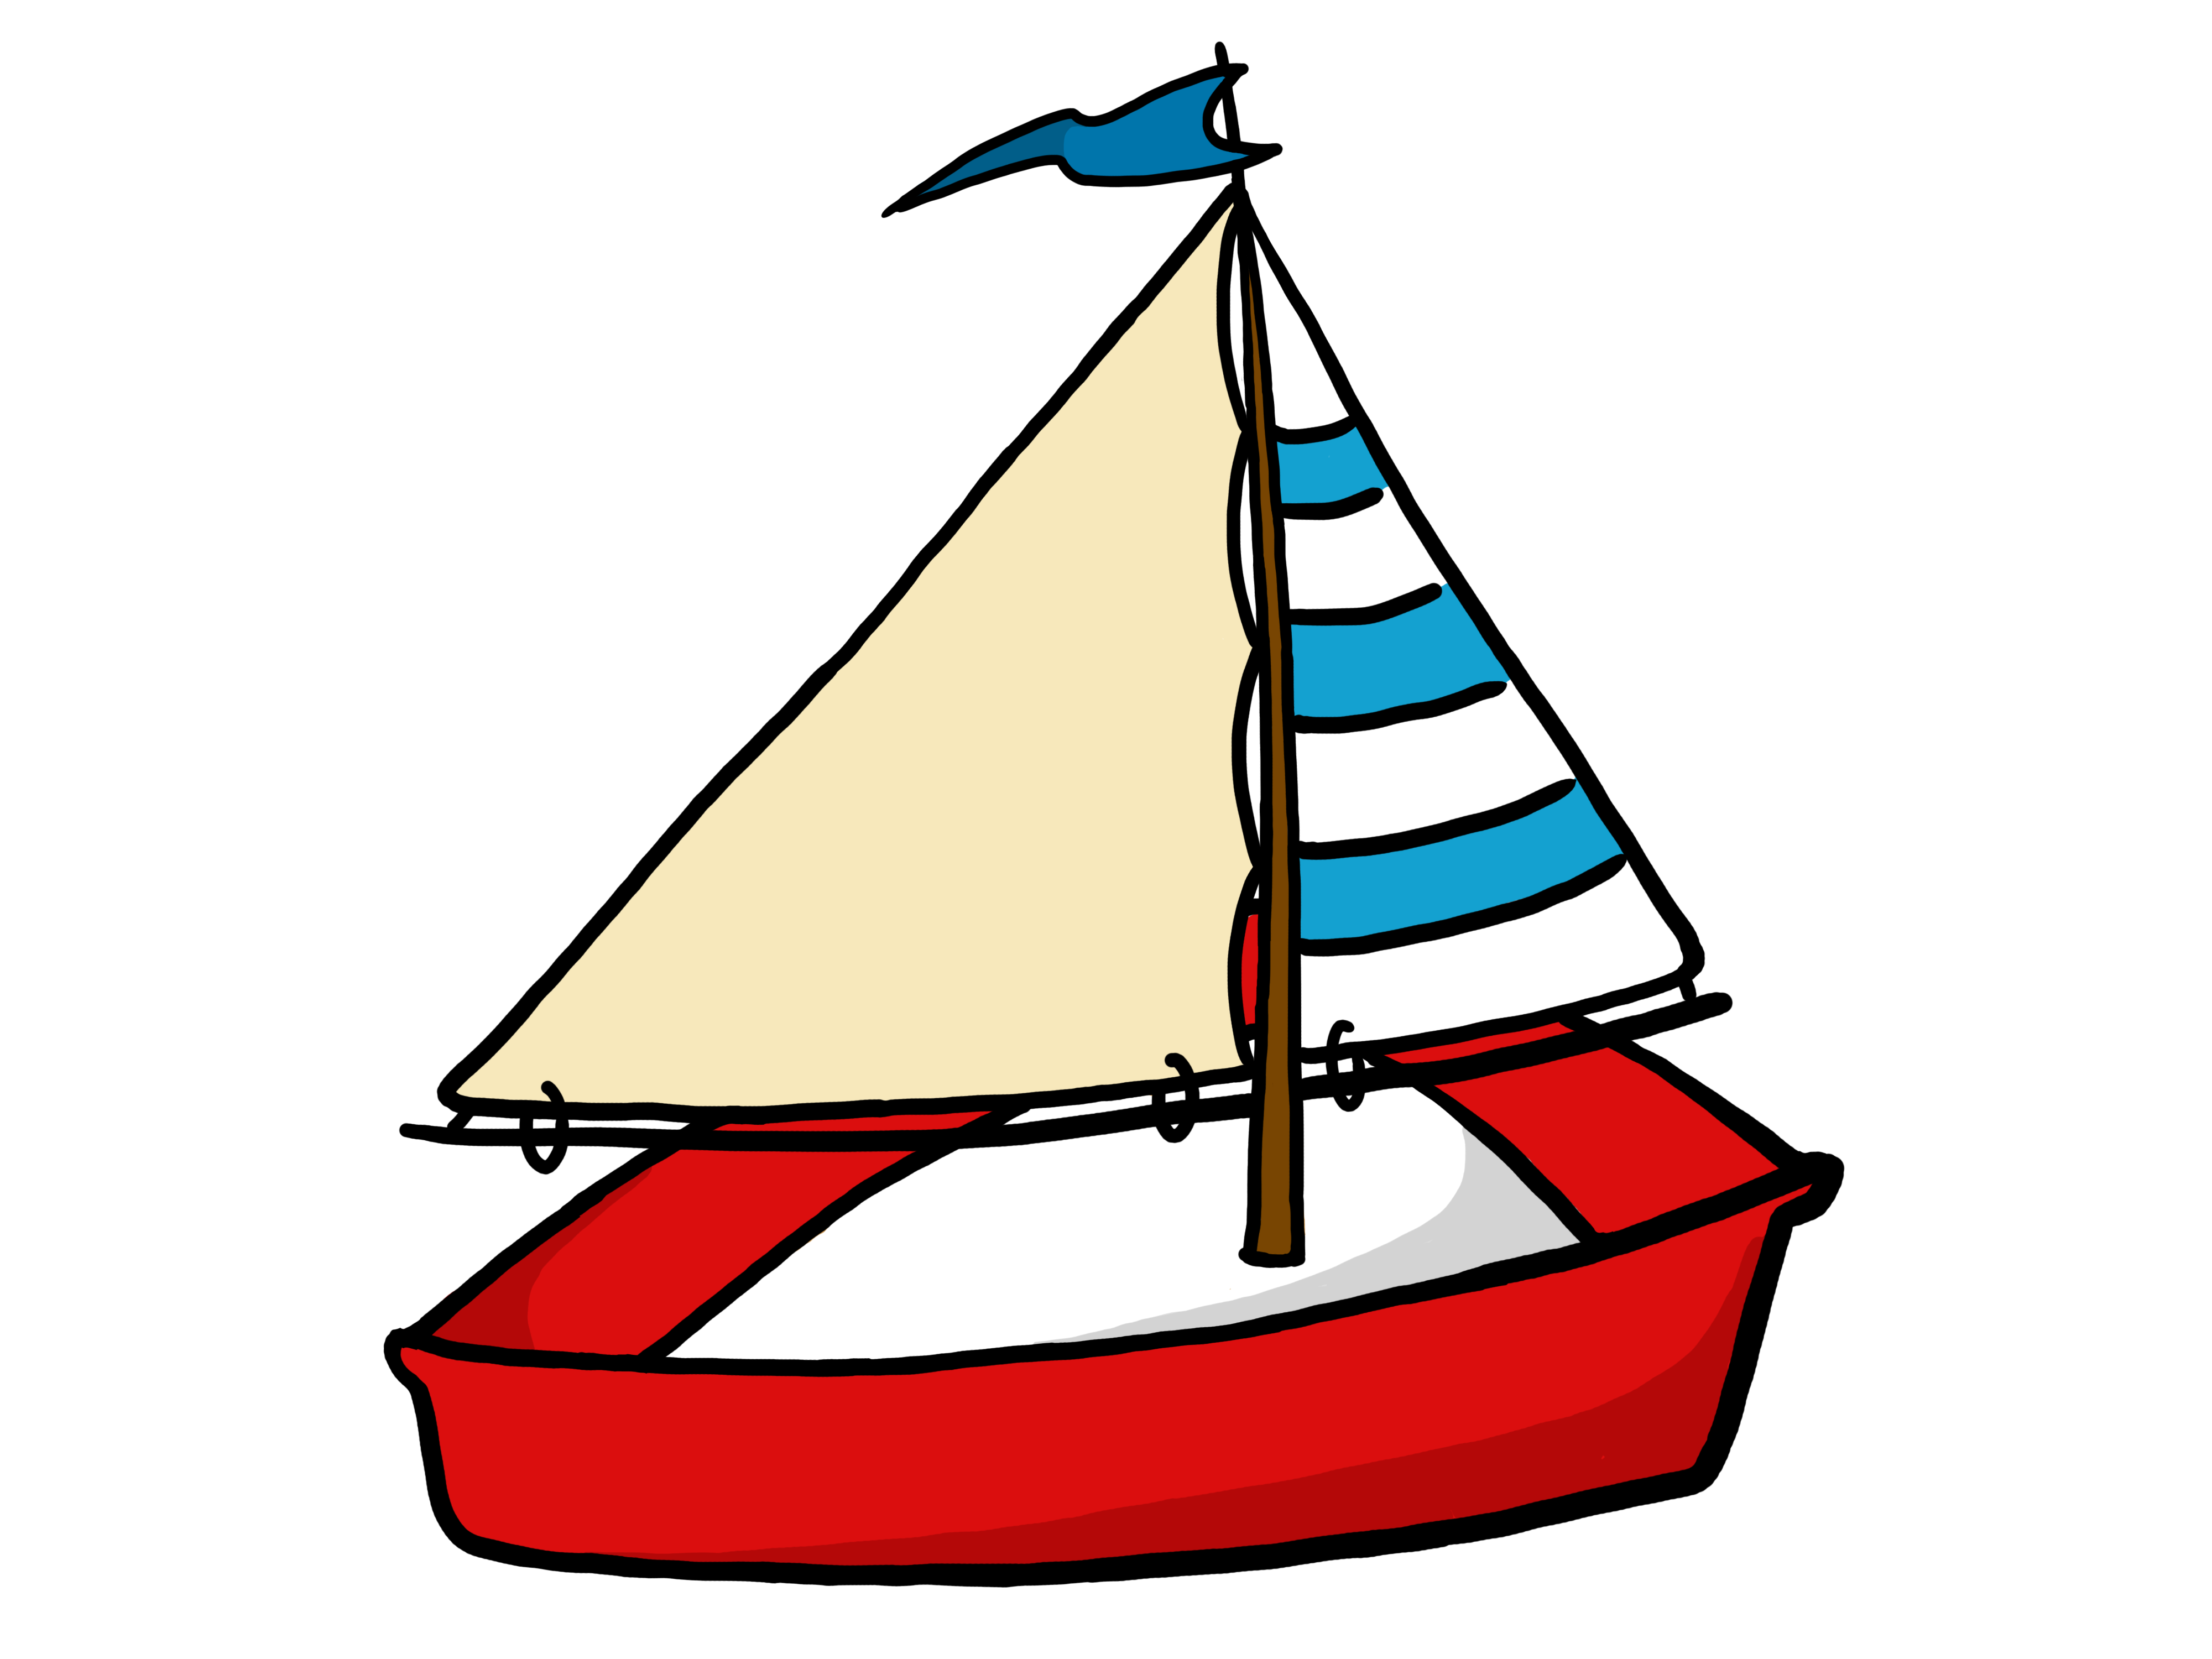 Boating Clipart Free Clipart Images-Boating clipart free clipart images-8